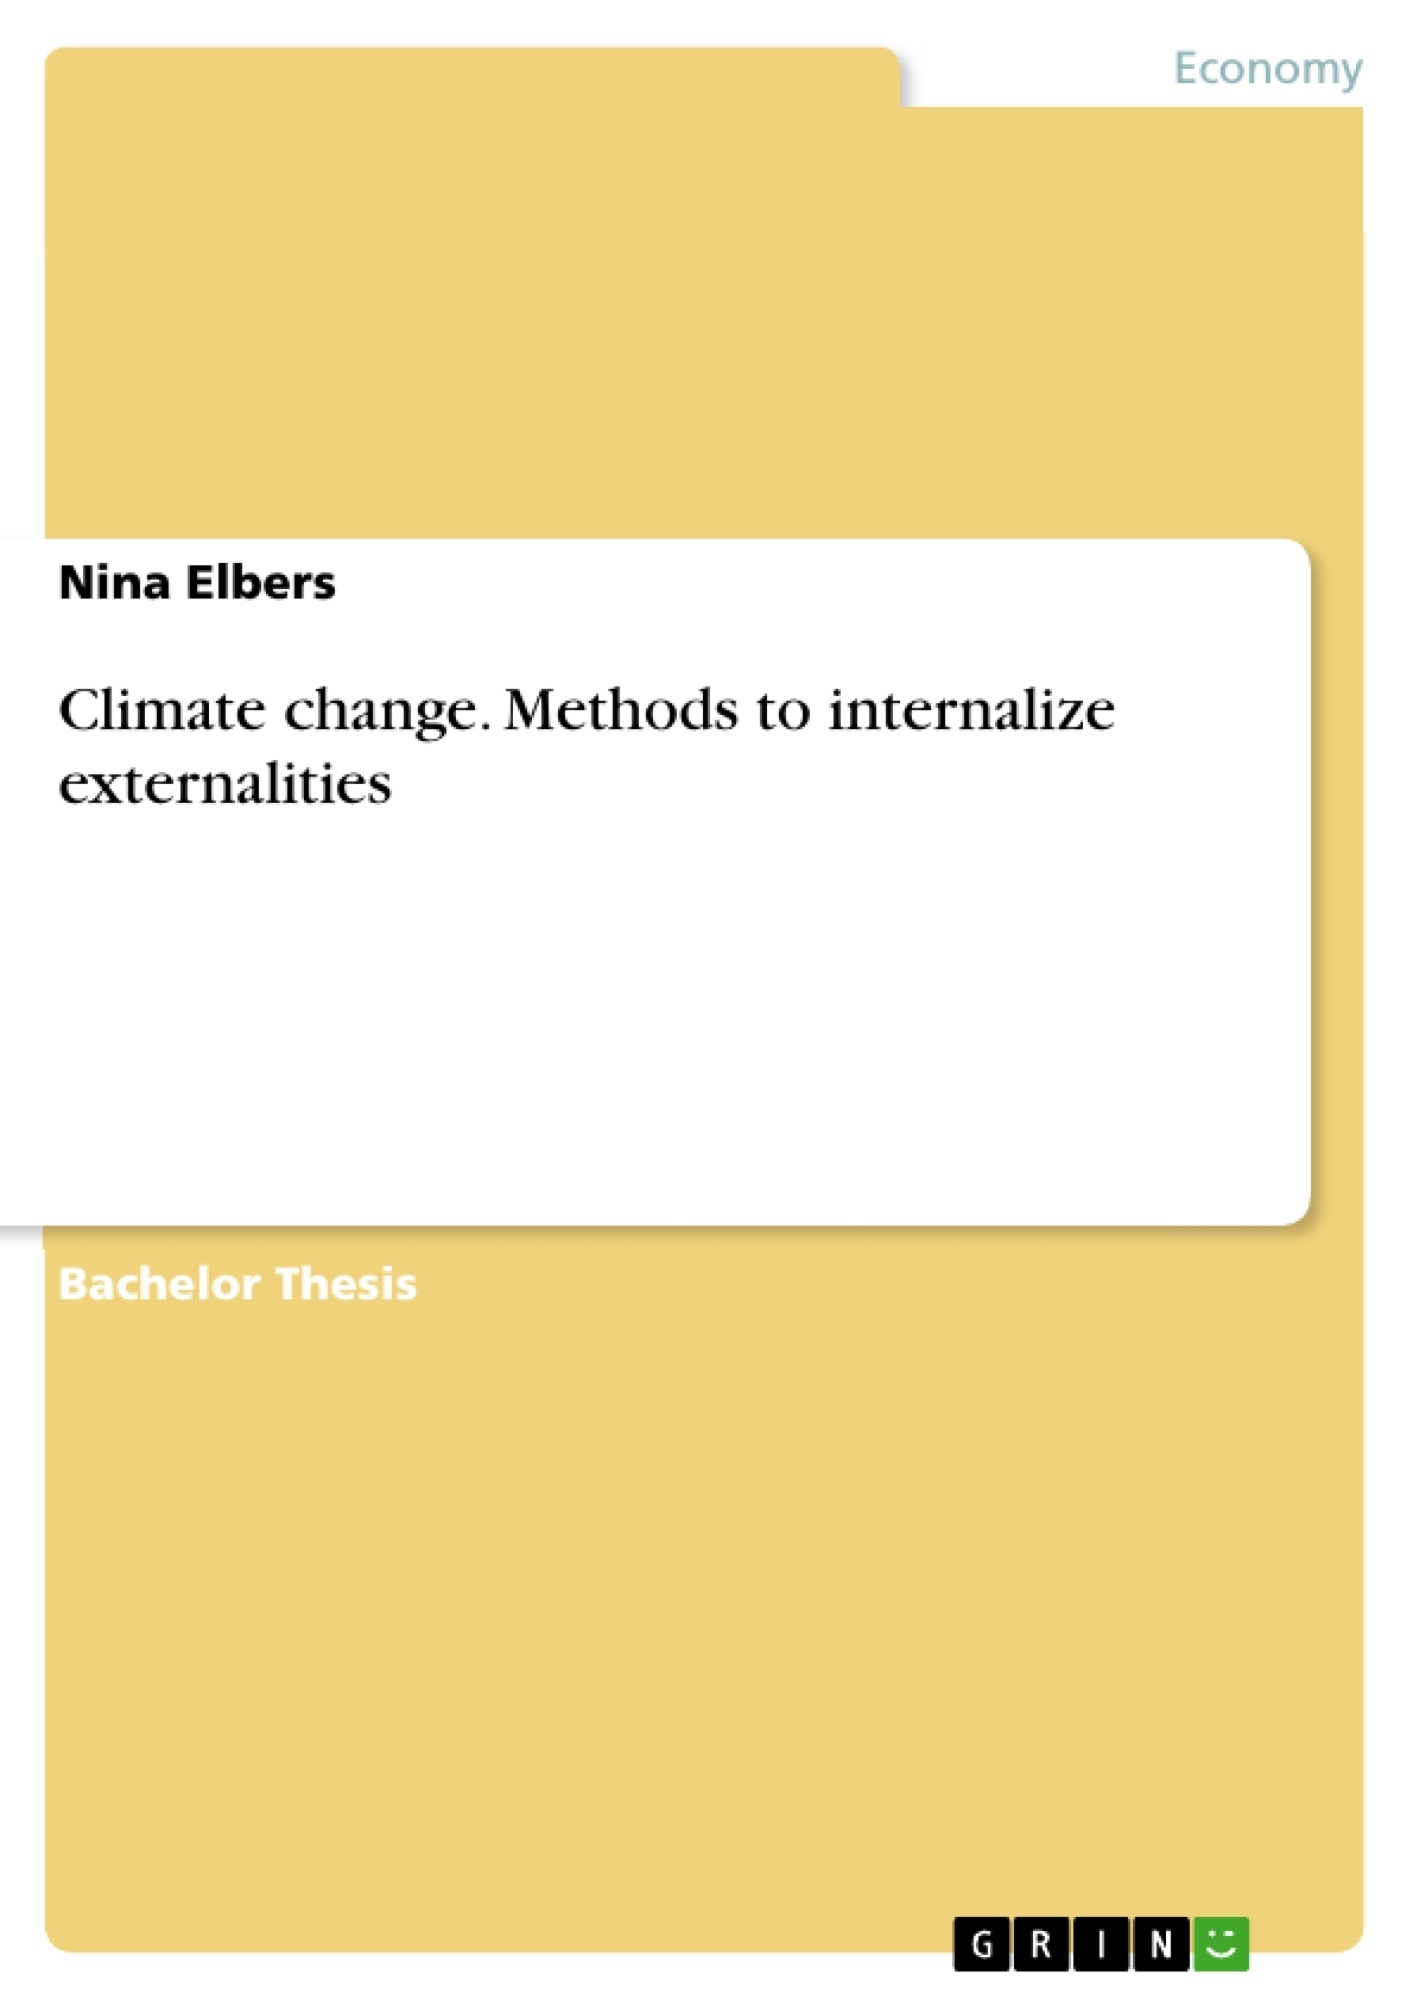 Title: Climate change. Methods to internalize externalities